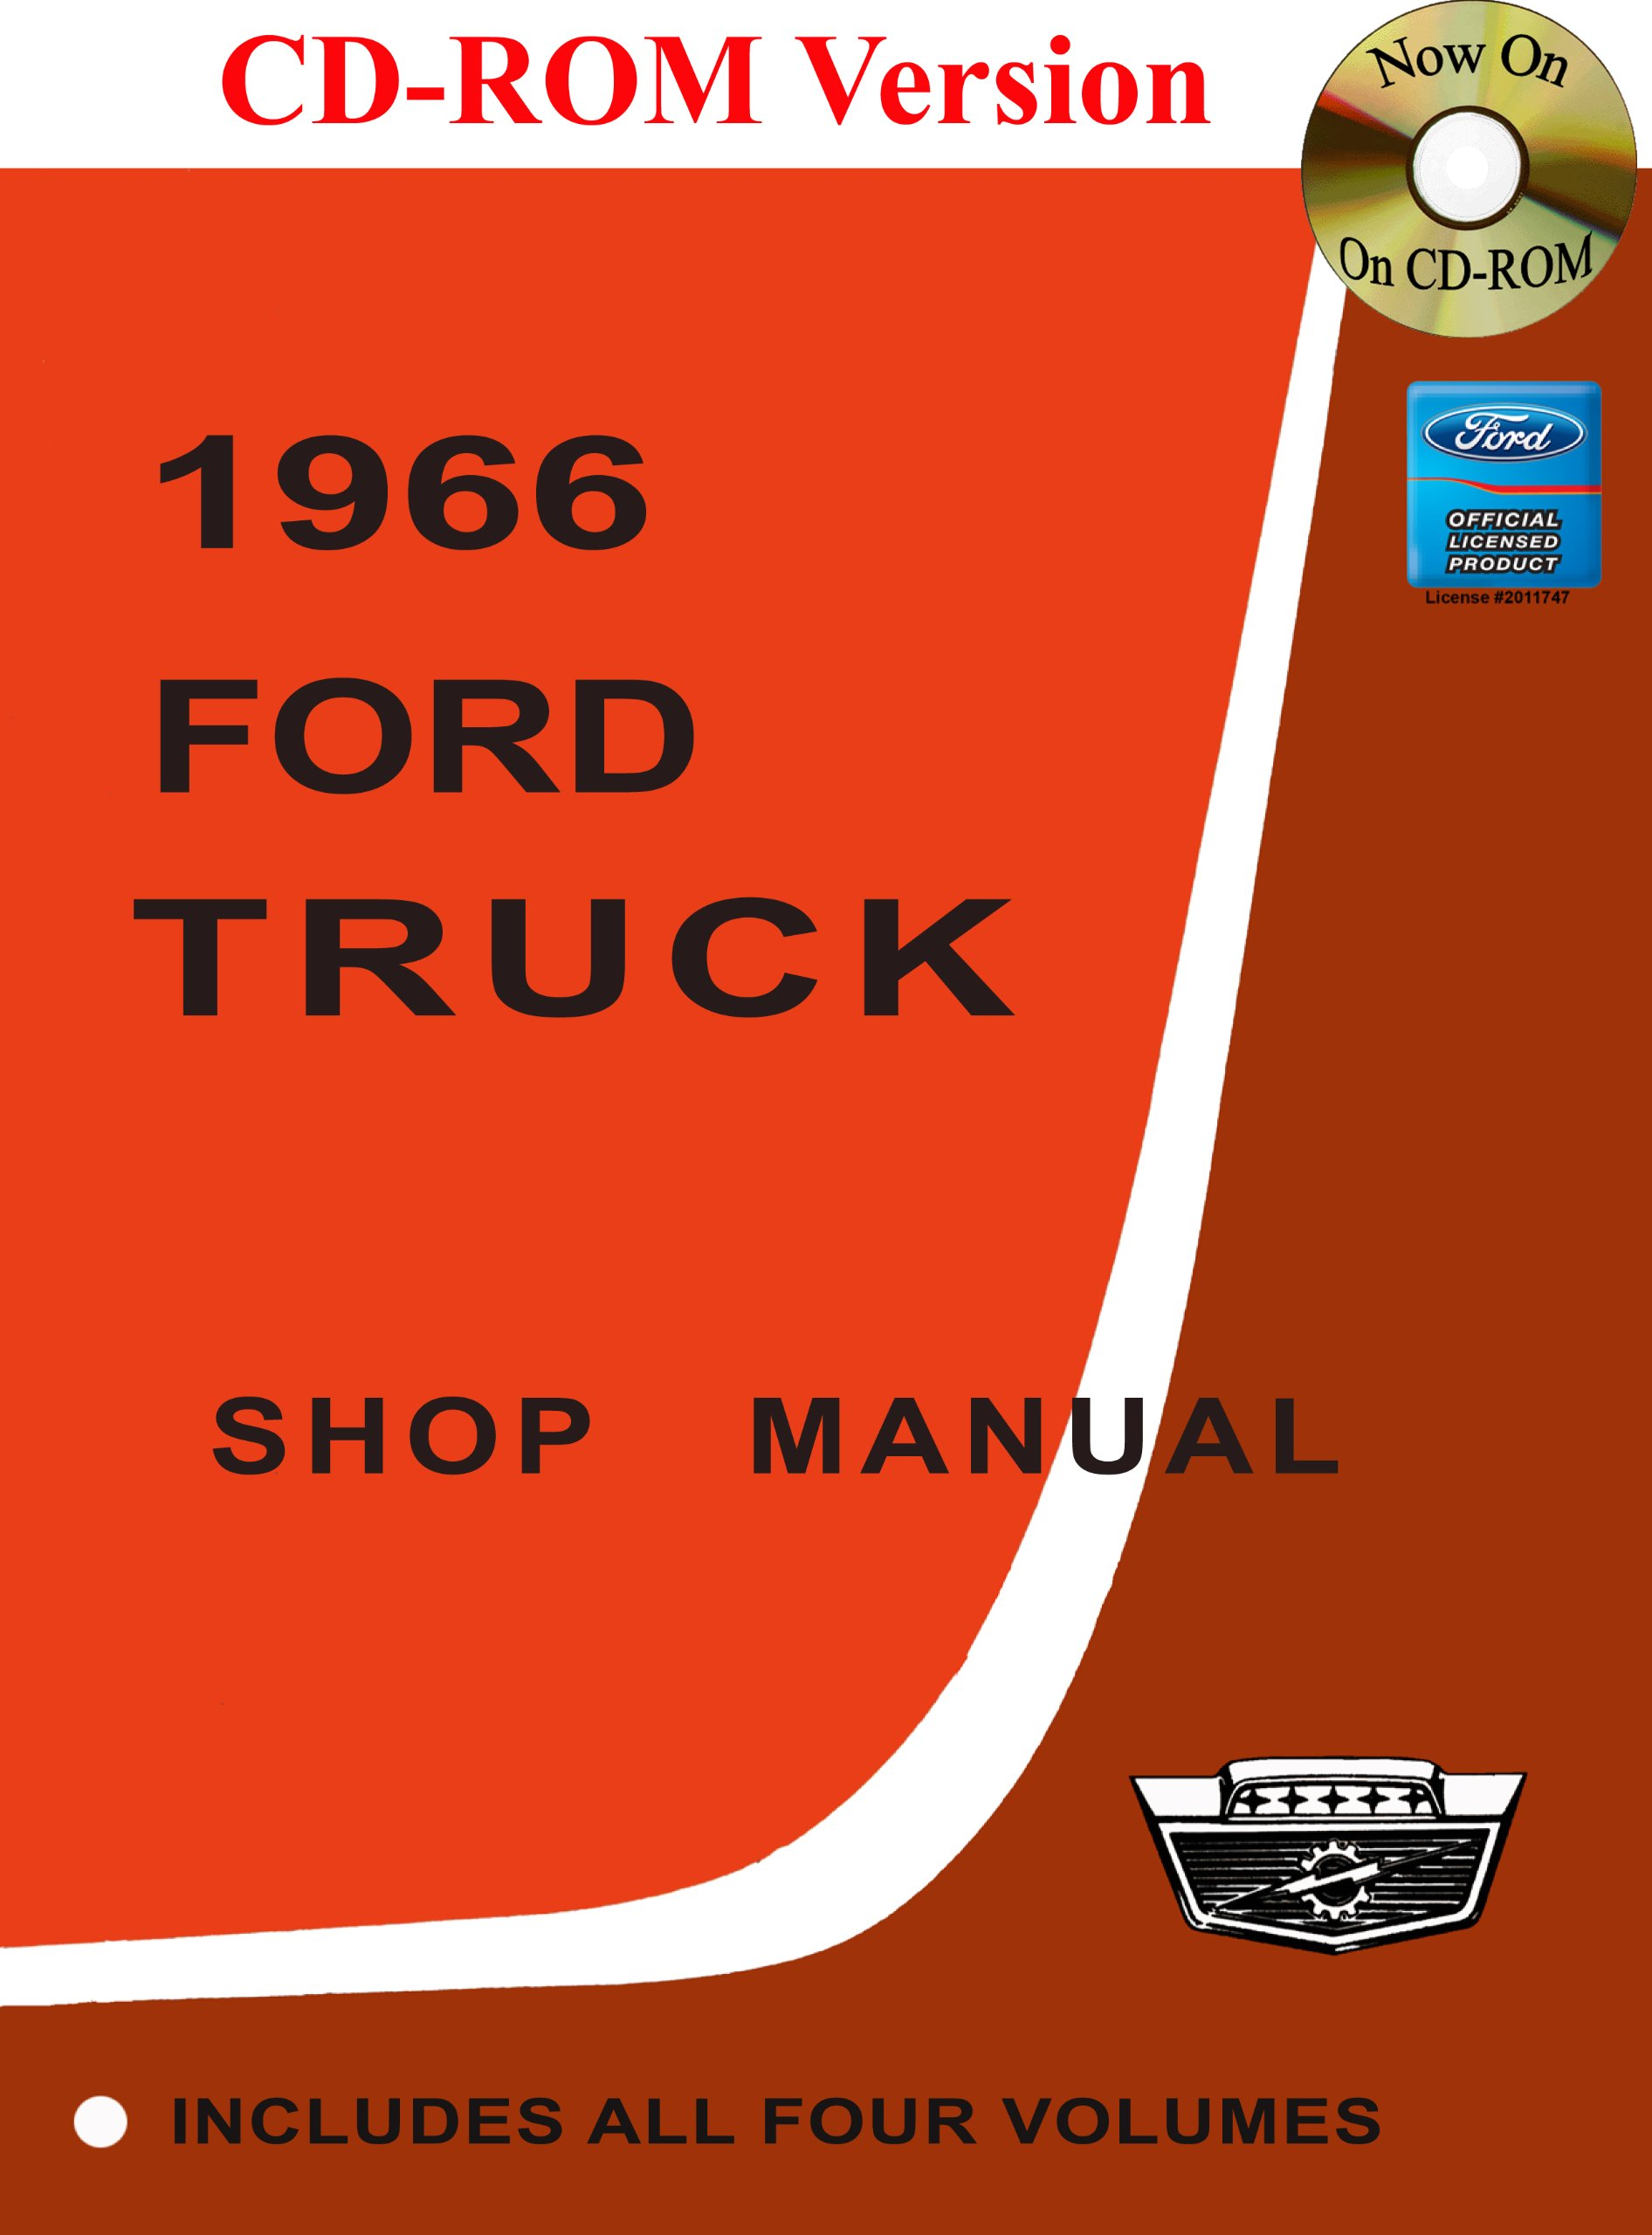 1966 Ford Truck Shop Manual: Ford Motor Company, David E. LeBlanc:  9781603710749: Amazon.com: Books